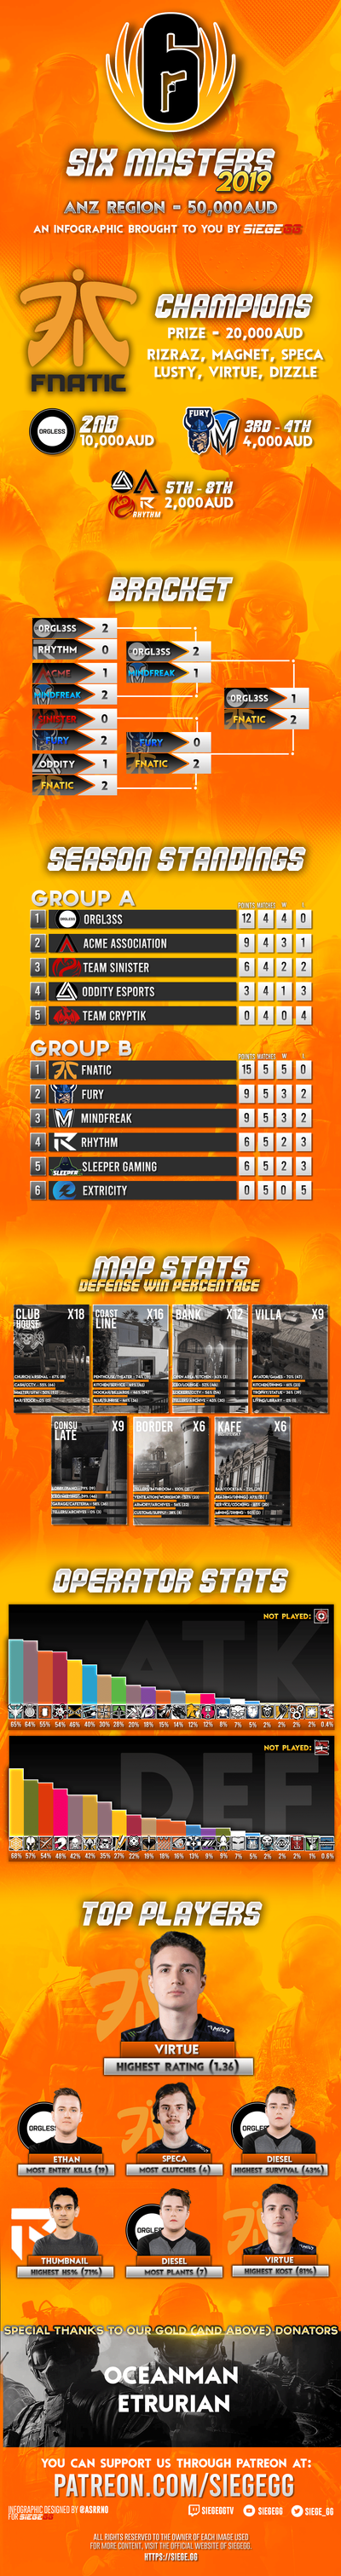 Six Masters 2019 Infographic